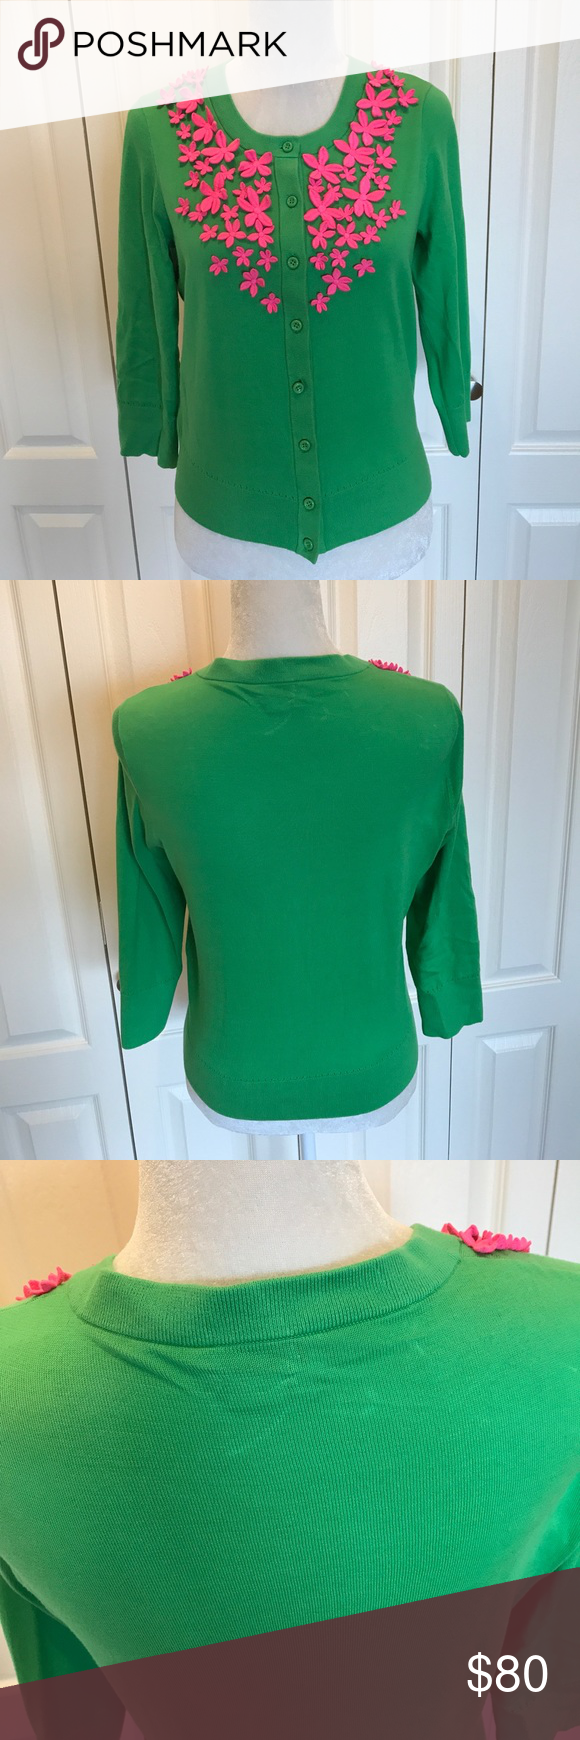 Kate spade green sweater | Embroidered flowers